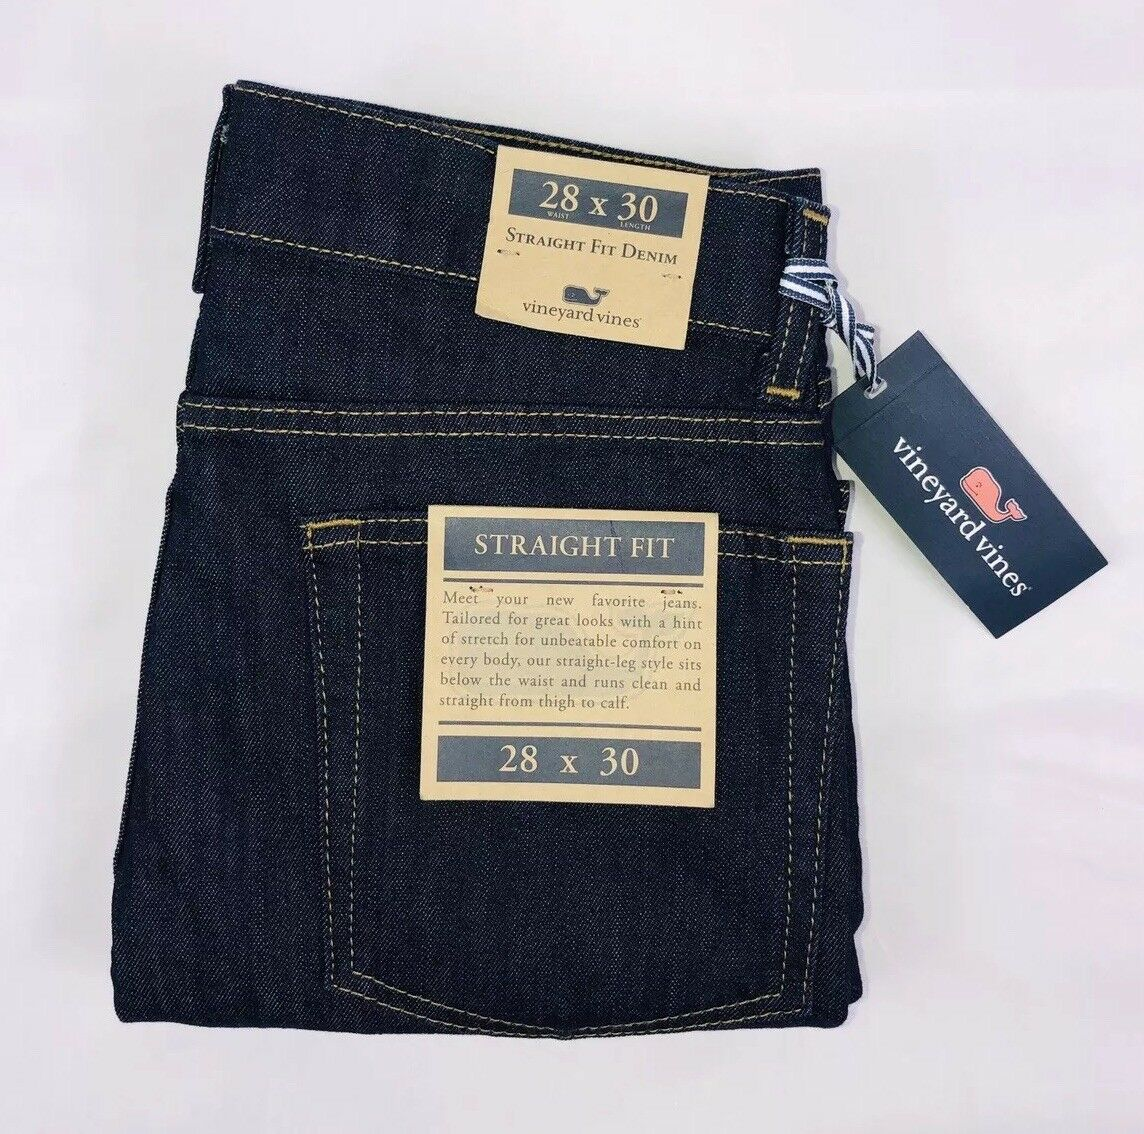 ba5492d52ef NWT Vines Men's Fit Jeans In Baltic bluee Dark Wash Size 28x30 Vineyard  Straight nthunn517-Jeans